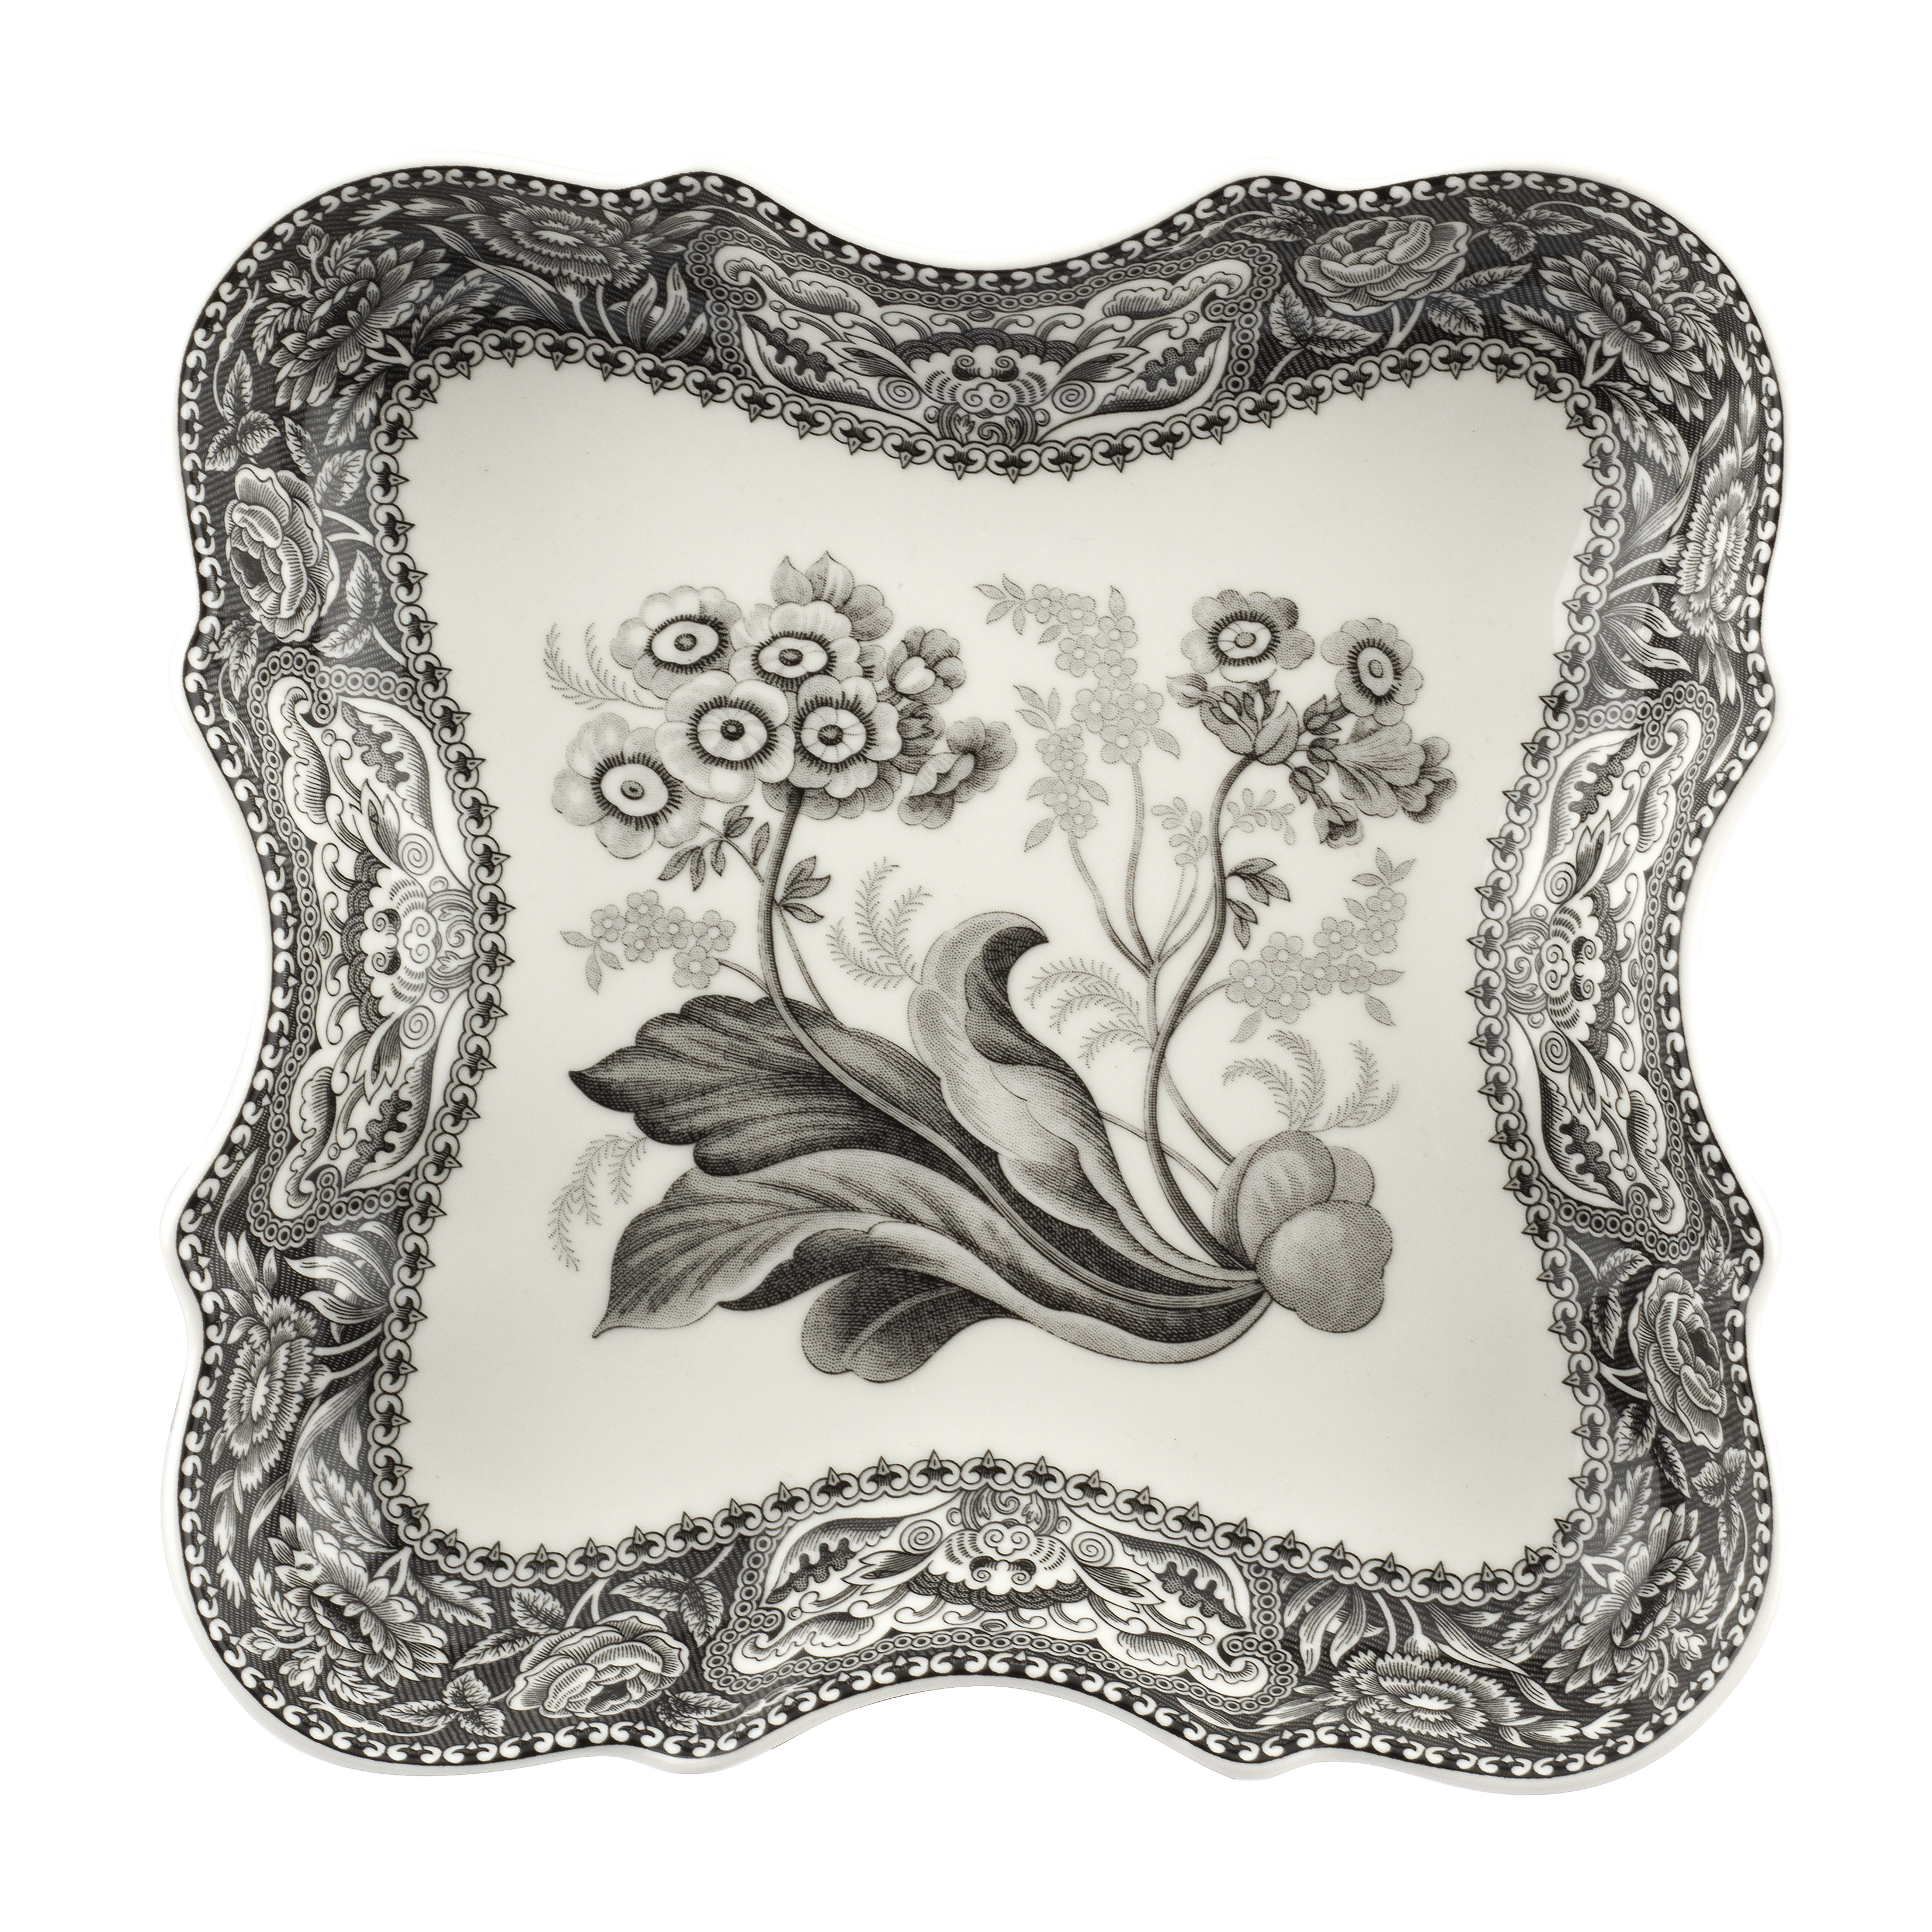 Spode Heritage 9.5 Inch Devonia Tray (Floral) image number 0